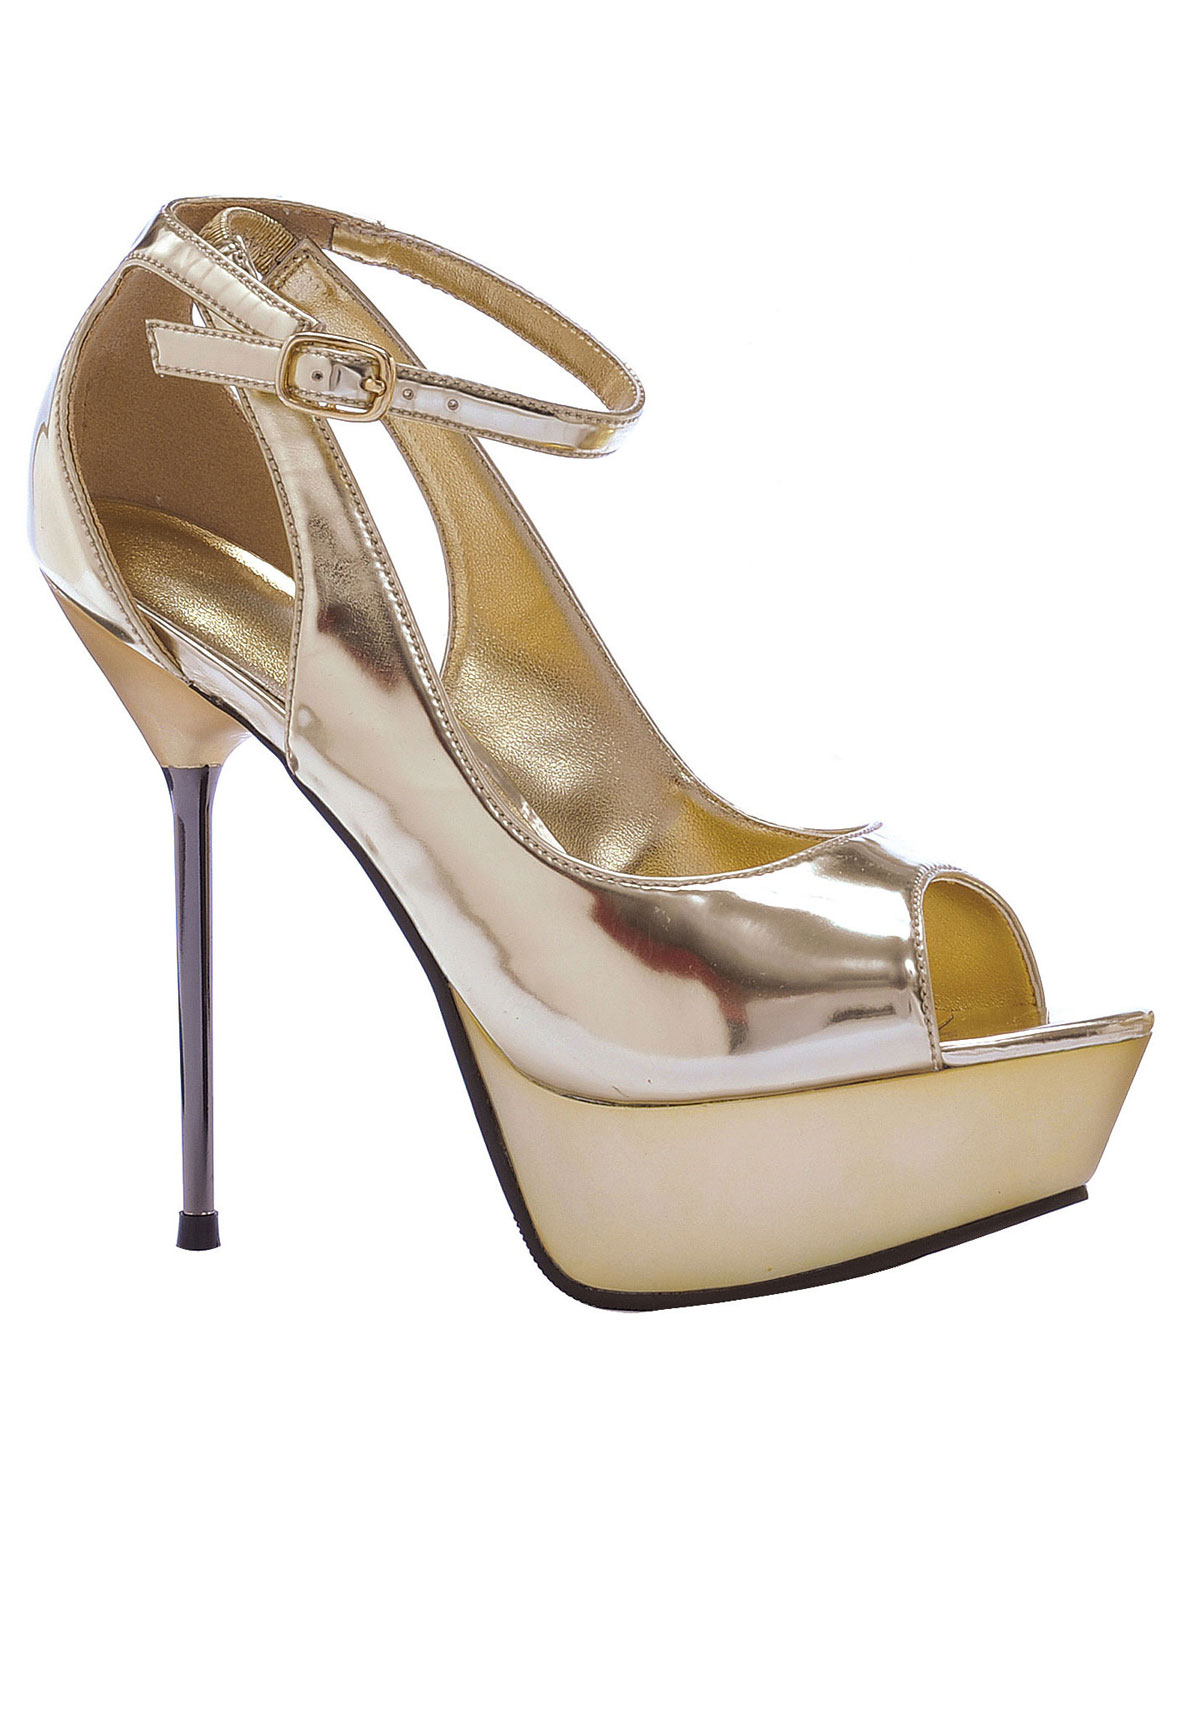 ellie shoes 567 loren loren 5 metallic stiletto heel